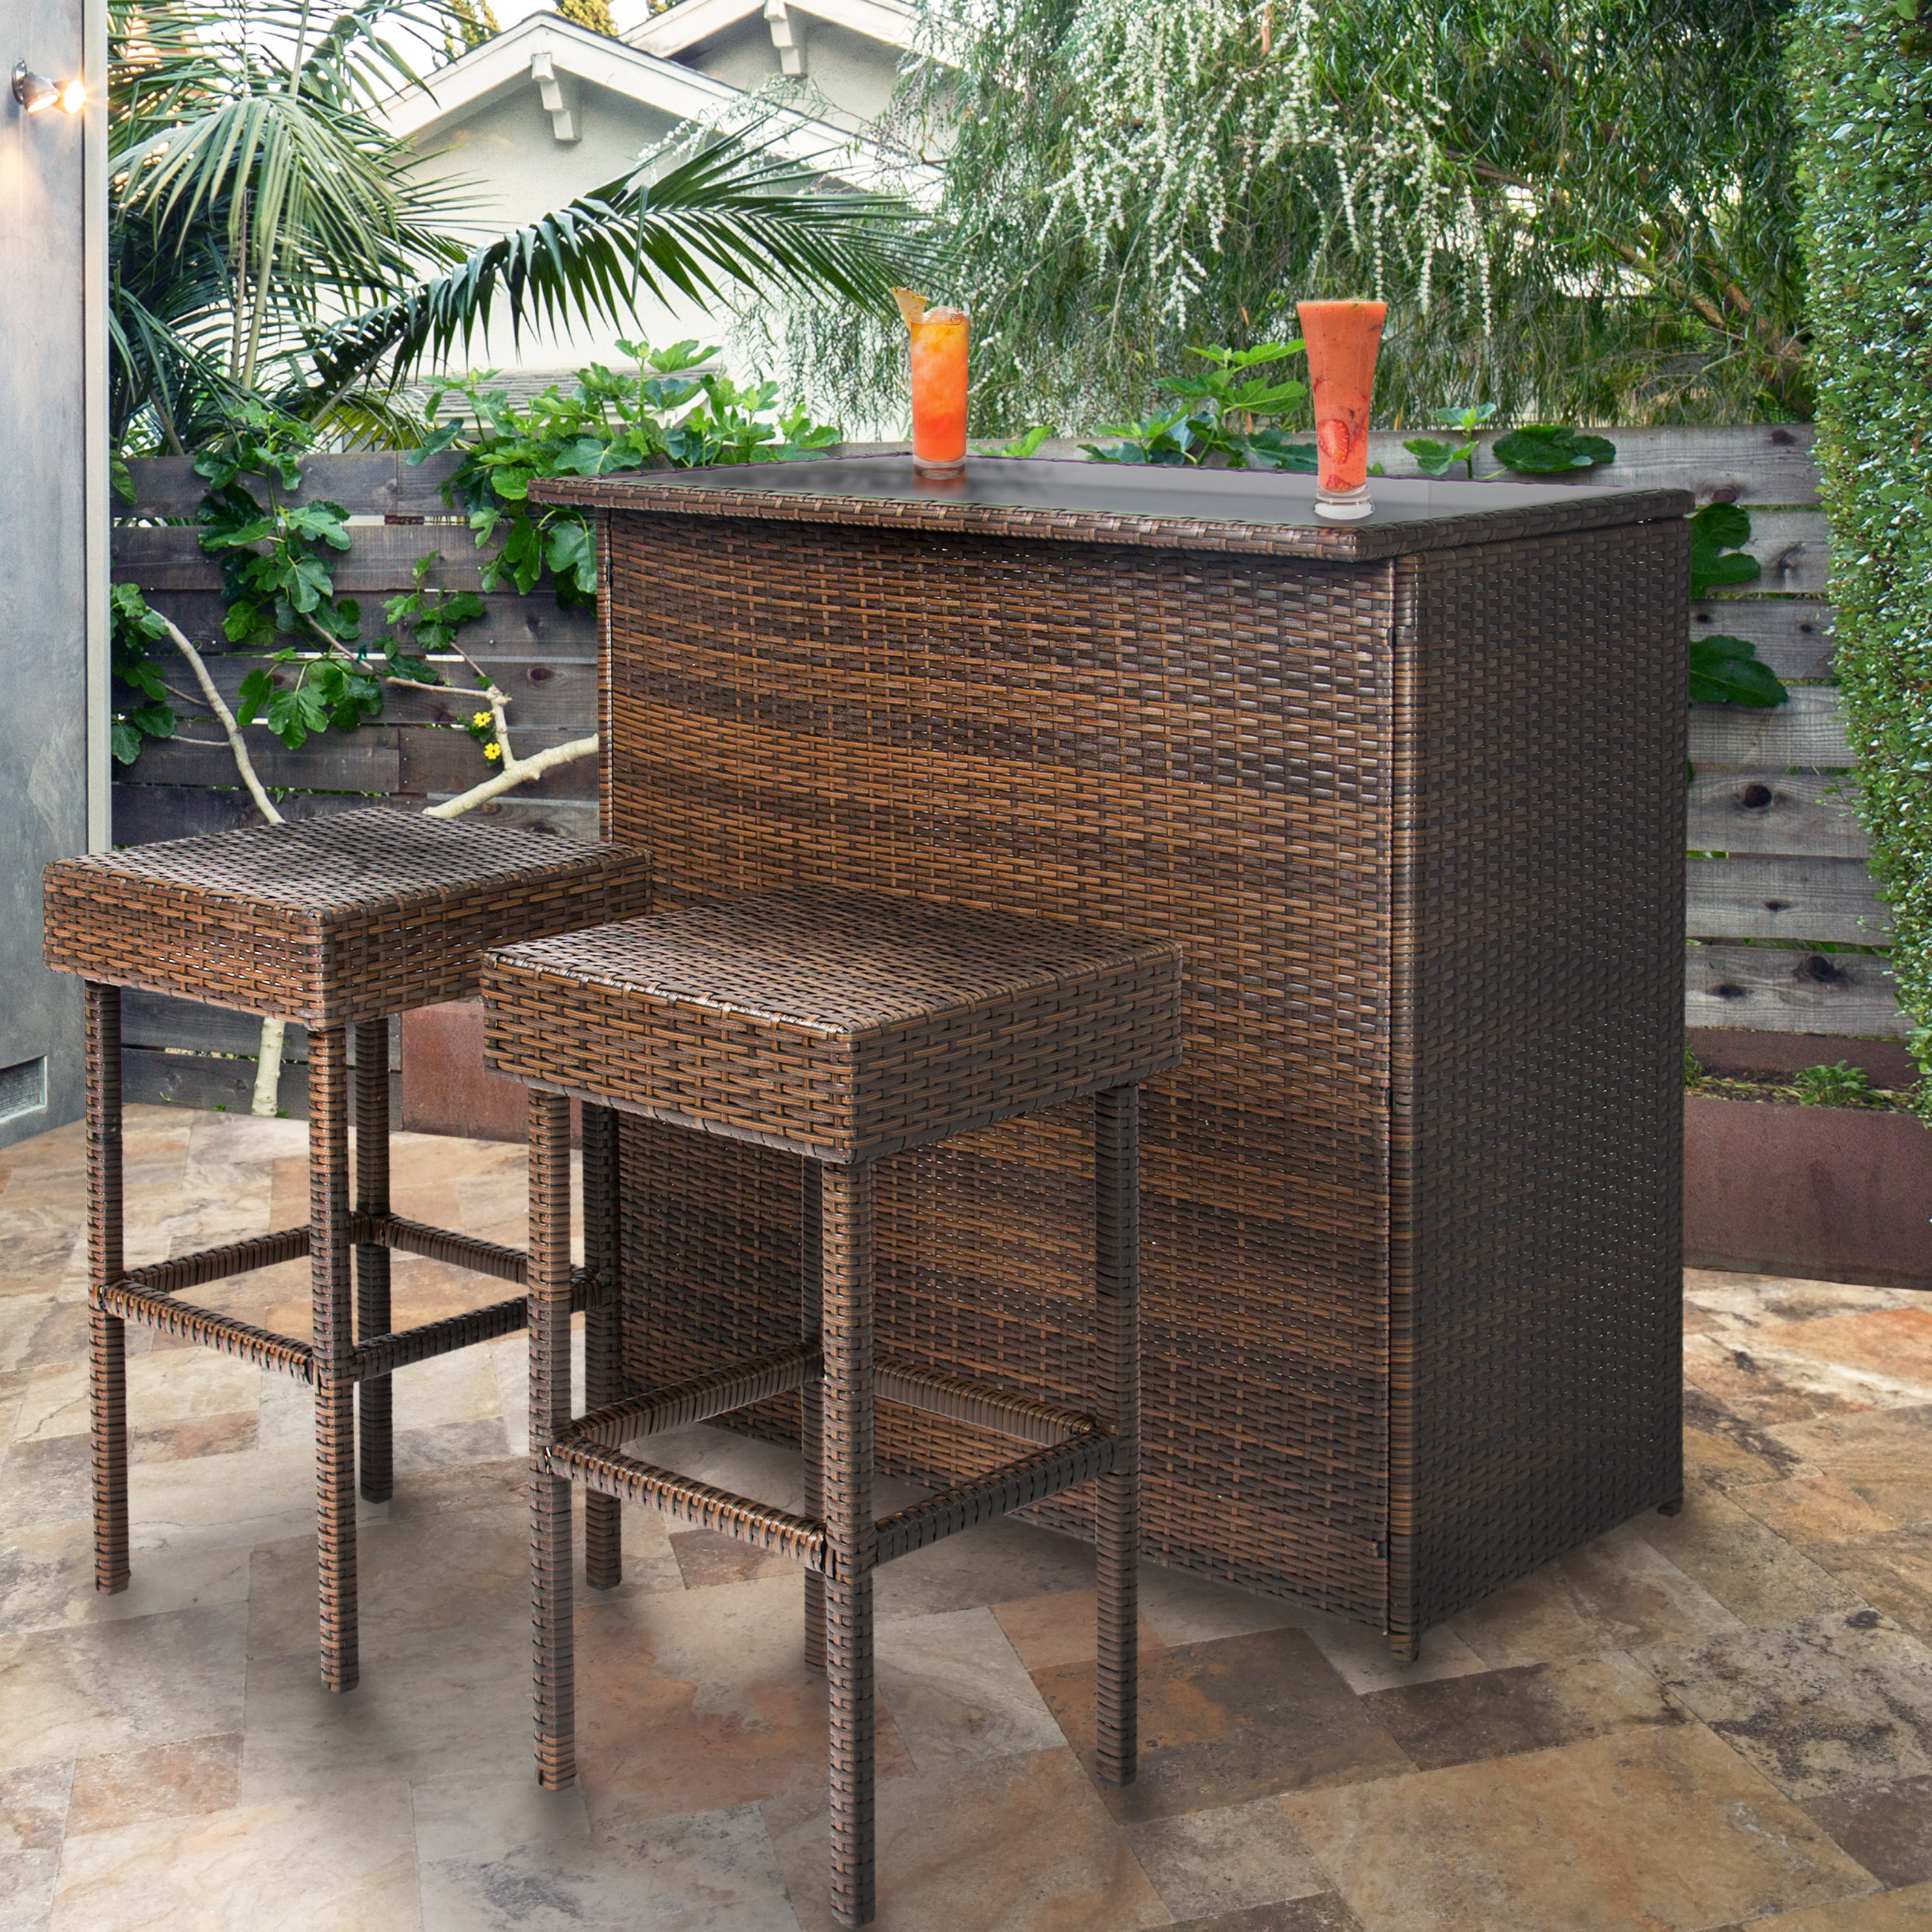 Best Choice Products 3PC Wicker Bar Set Patio Outdoor Backyard Table & 2  Stools Rattan Garden